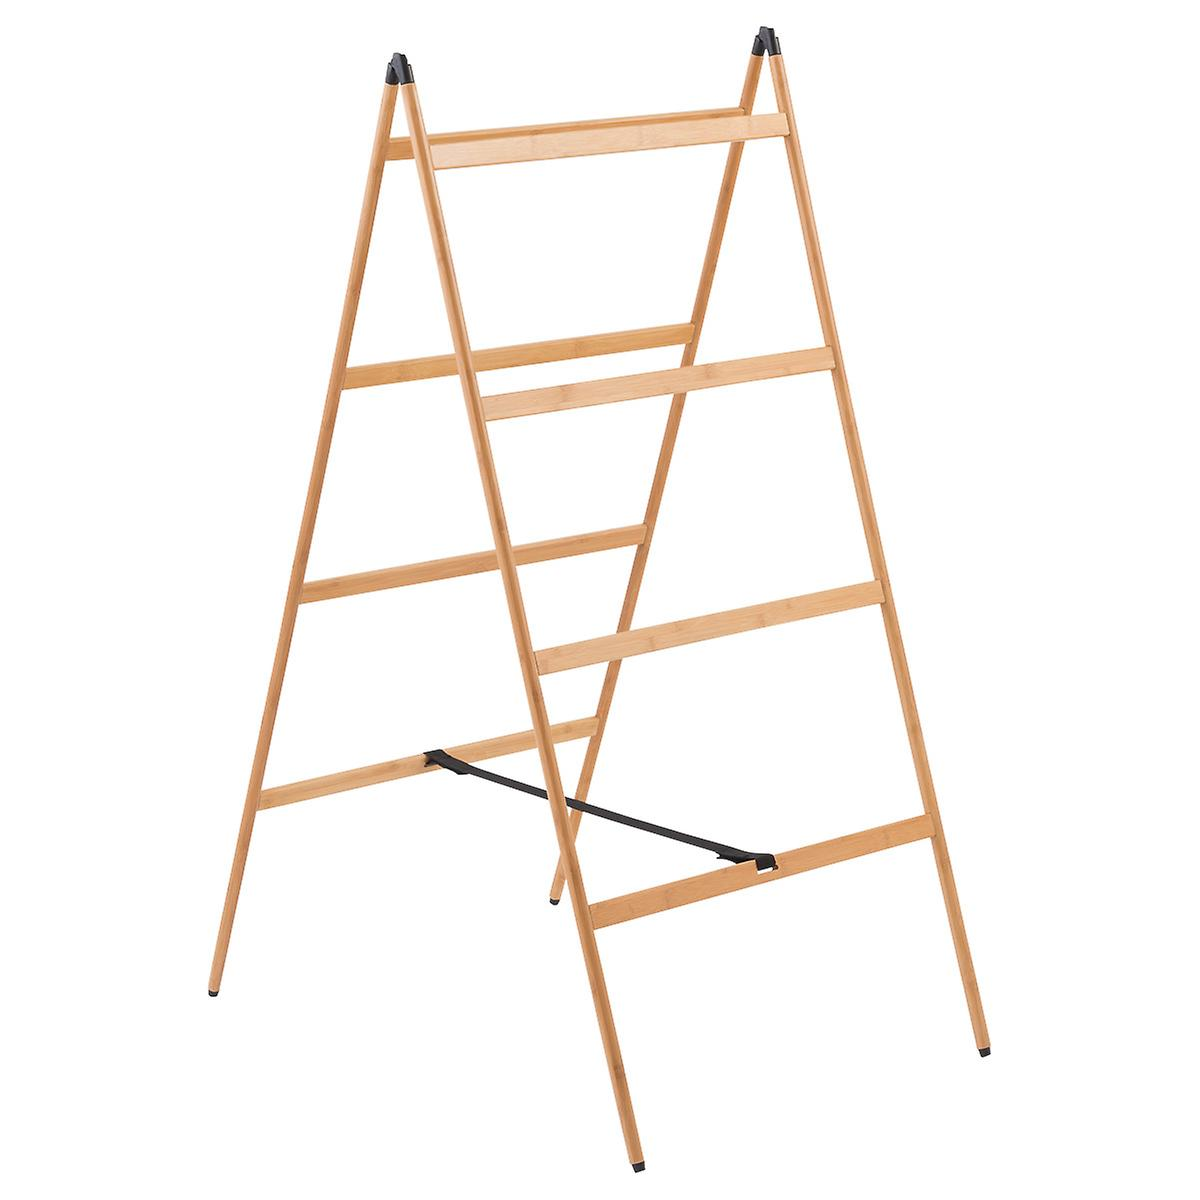 Bamboo Clothes Drying Rack Cosmecol